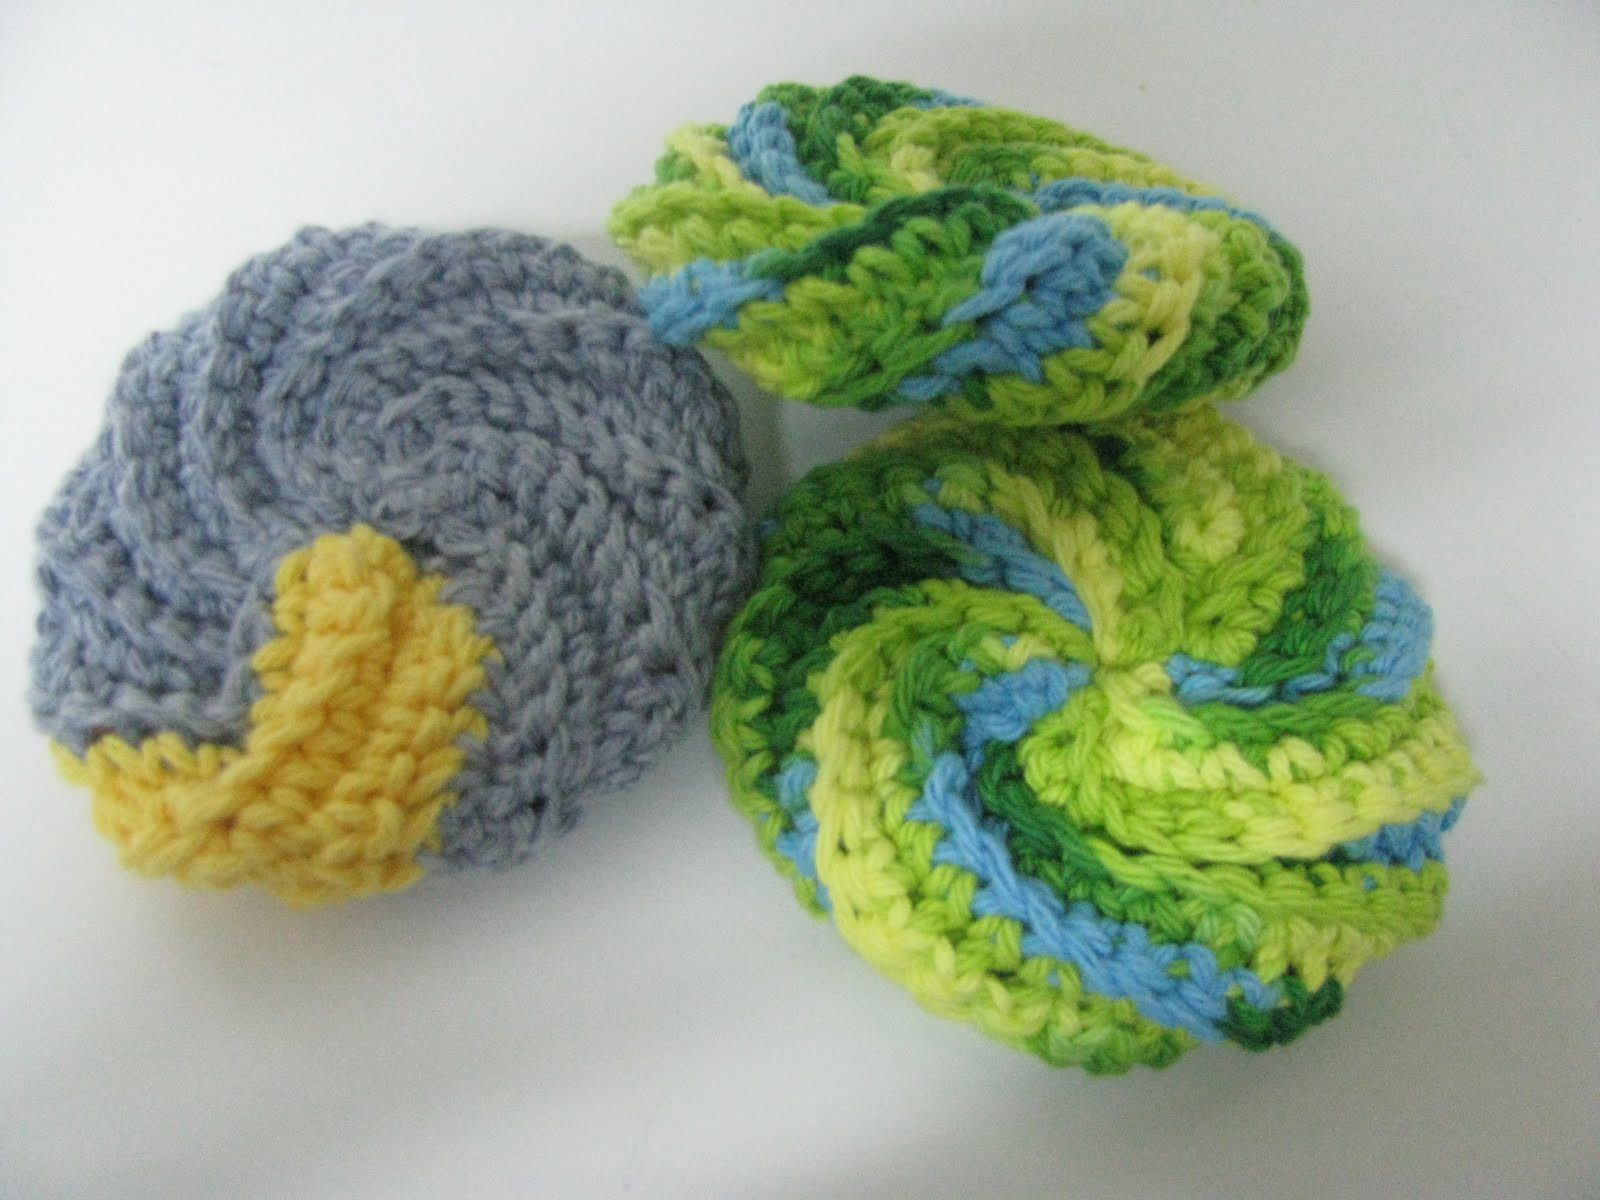 COTTON CROCHET PATTERN YARN Crochet Patterns